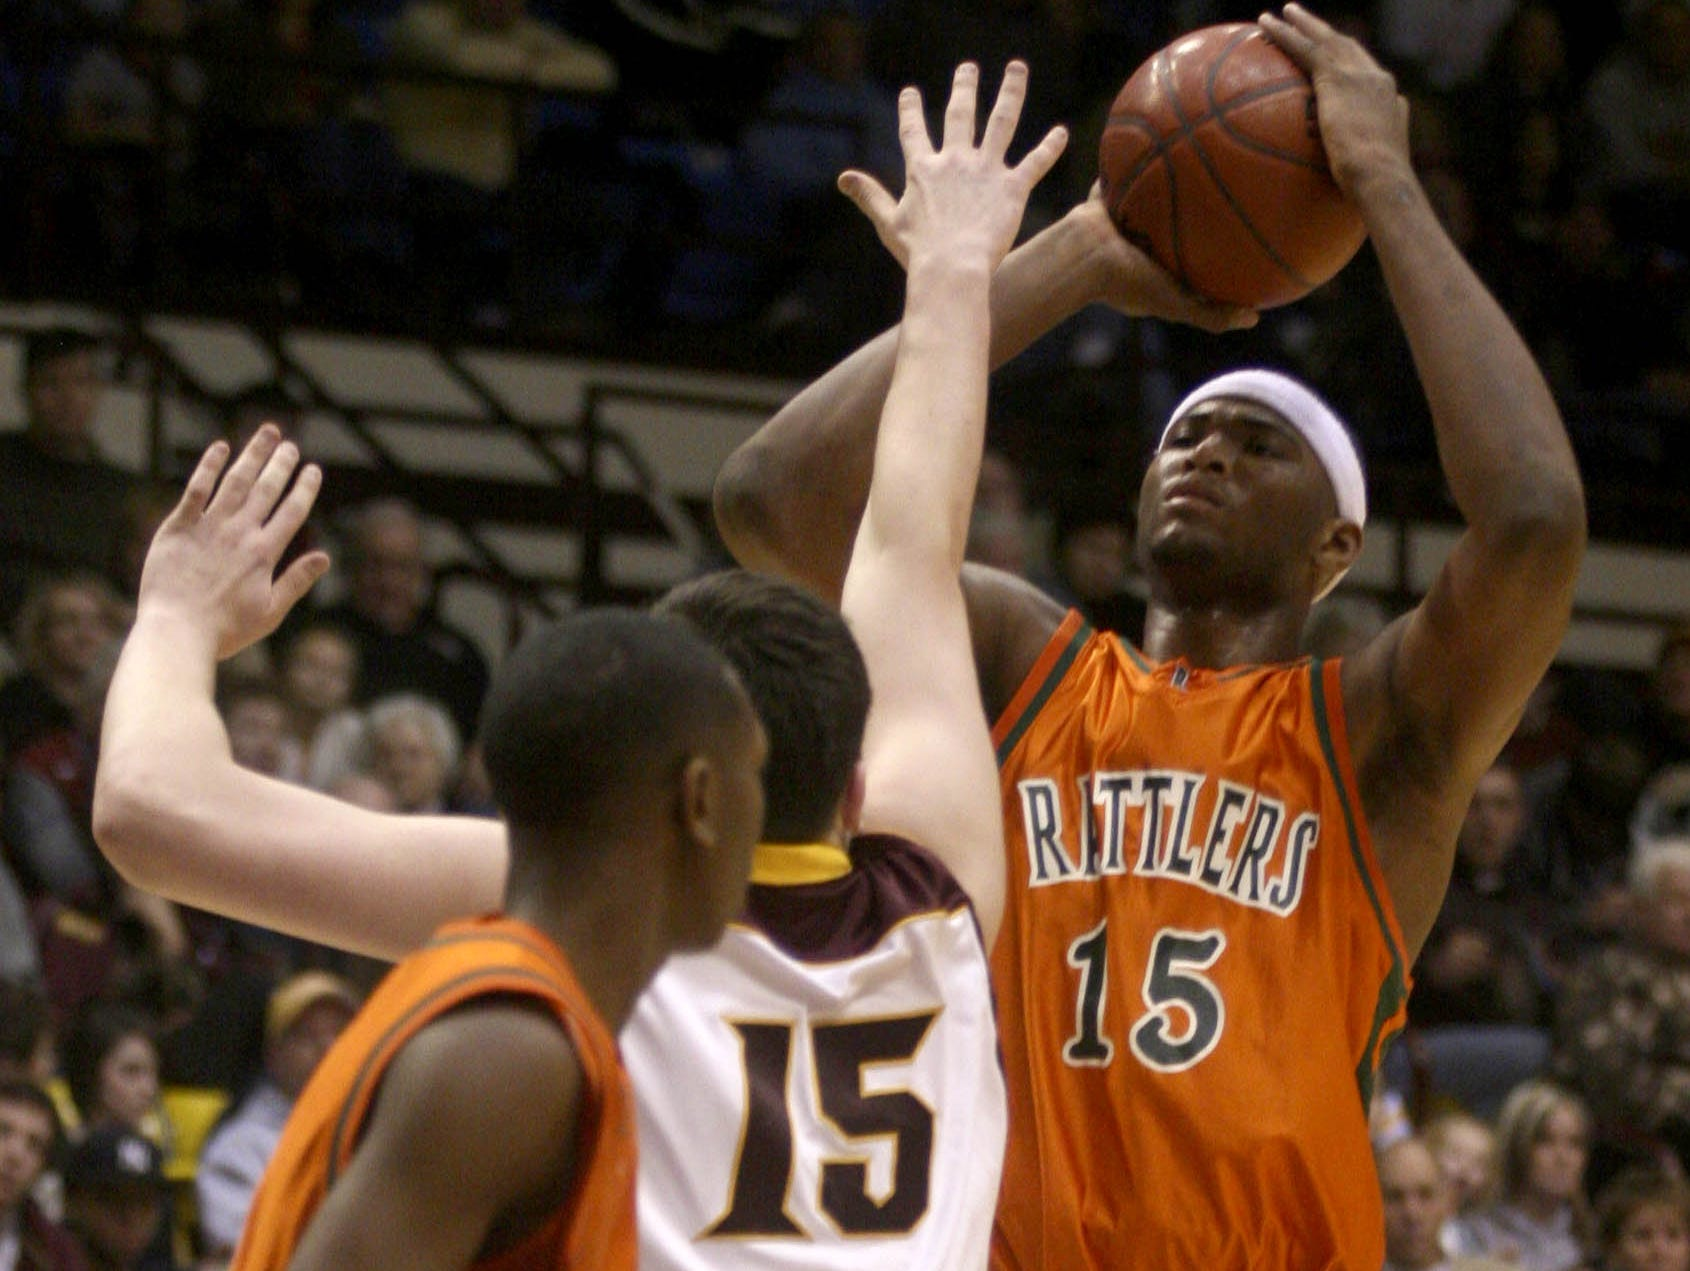 Leflore's Demarcus Cousins shoots over Christ the King's Dominyka Milka at a Tournament of Champions game.